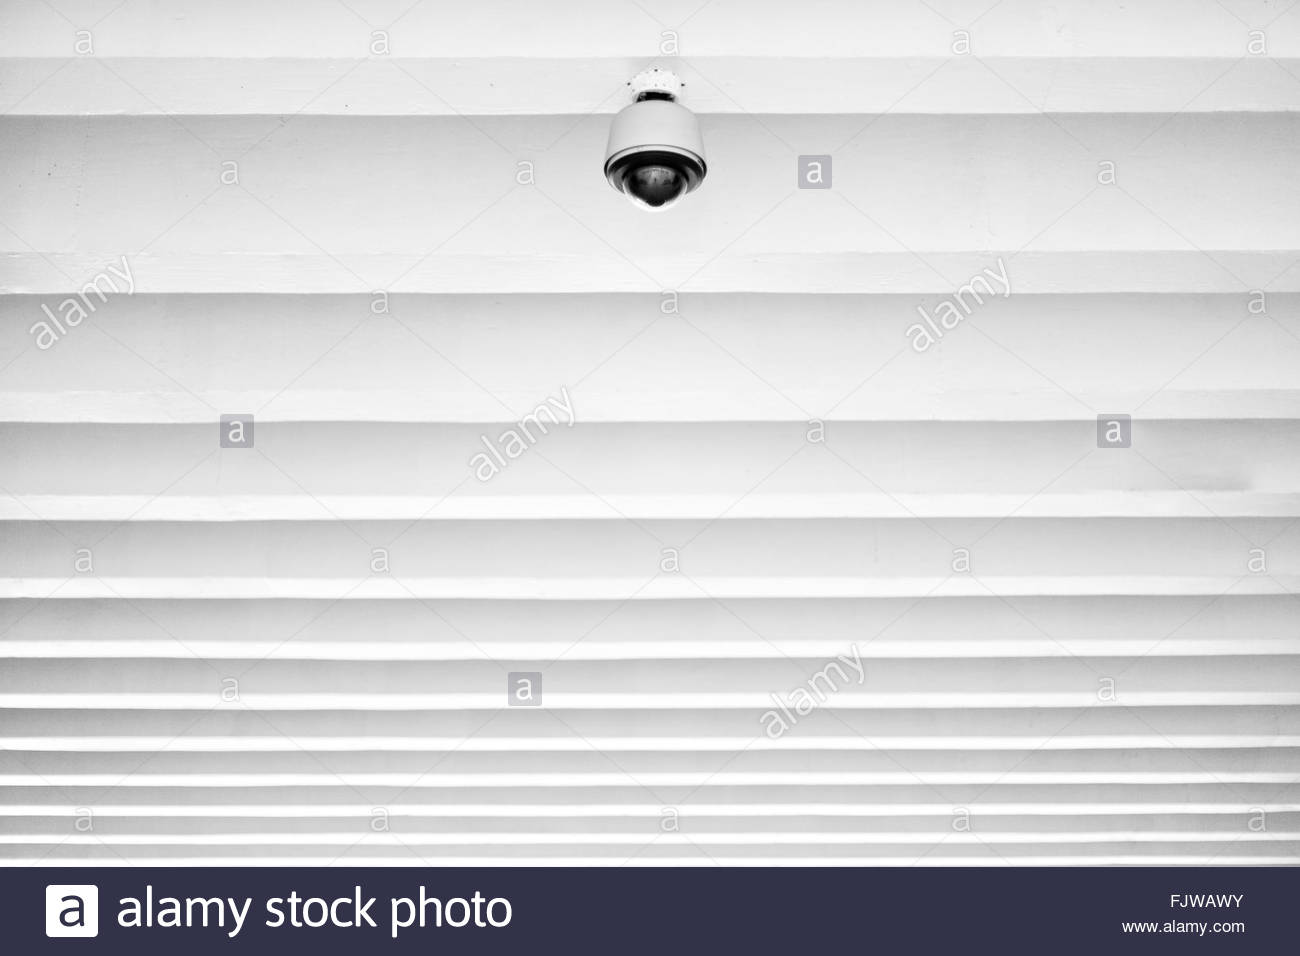 Low Angle View Of Lighting Equipment On Ceiling - Stock Image